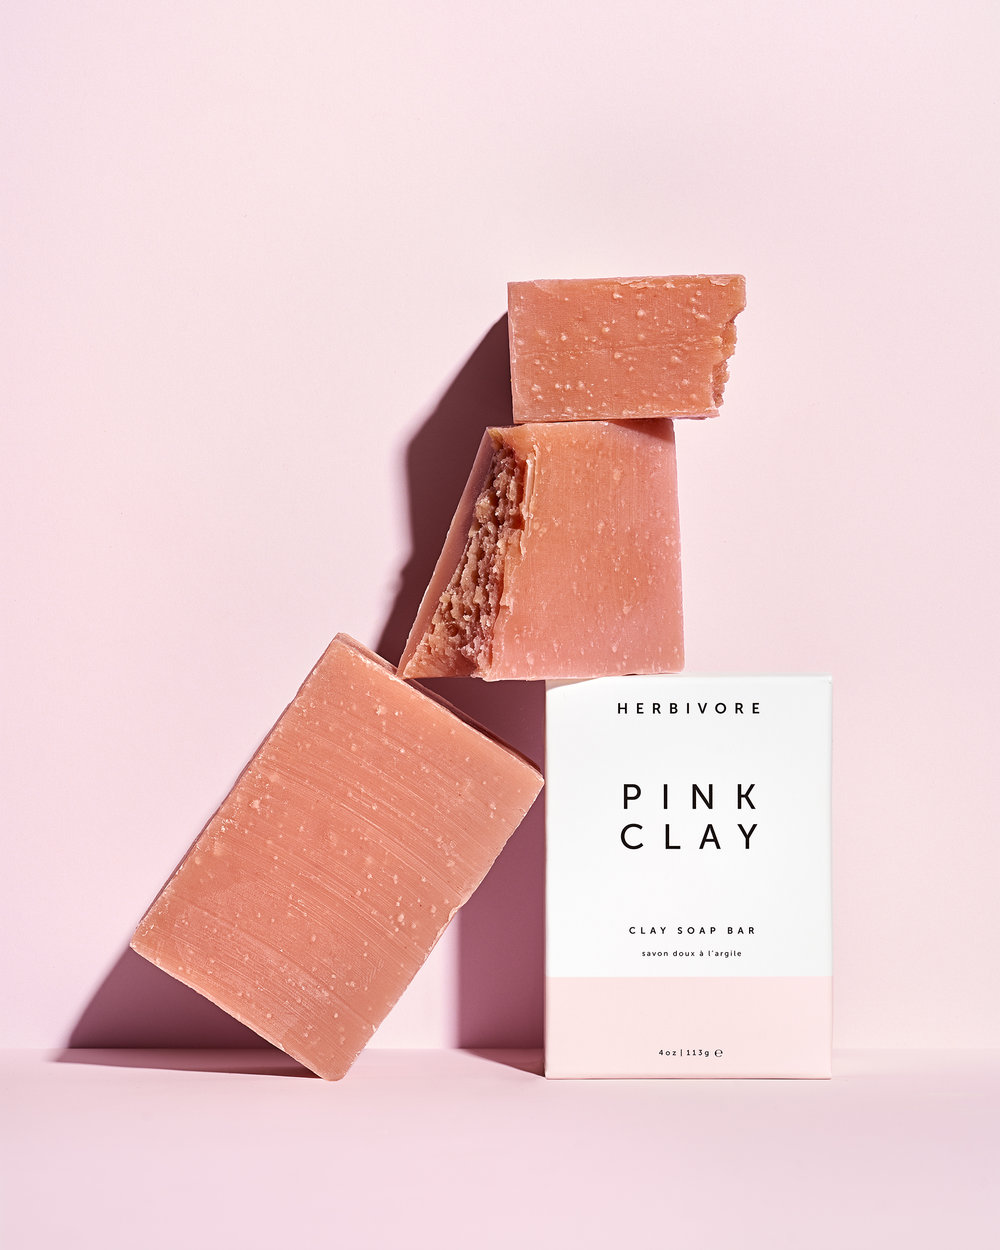 1362-04C HBV HIR PINKCLAYSOAP_MULTIPLE.JPG